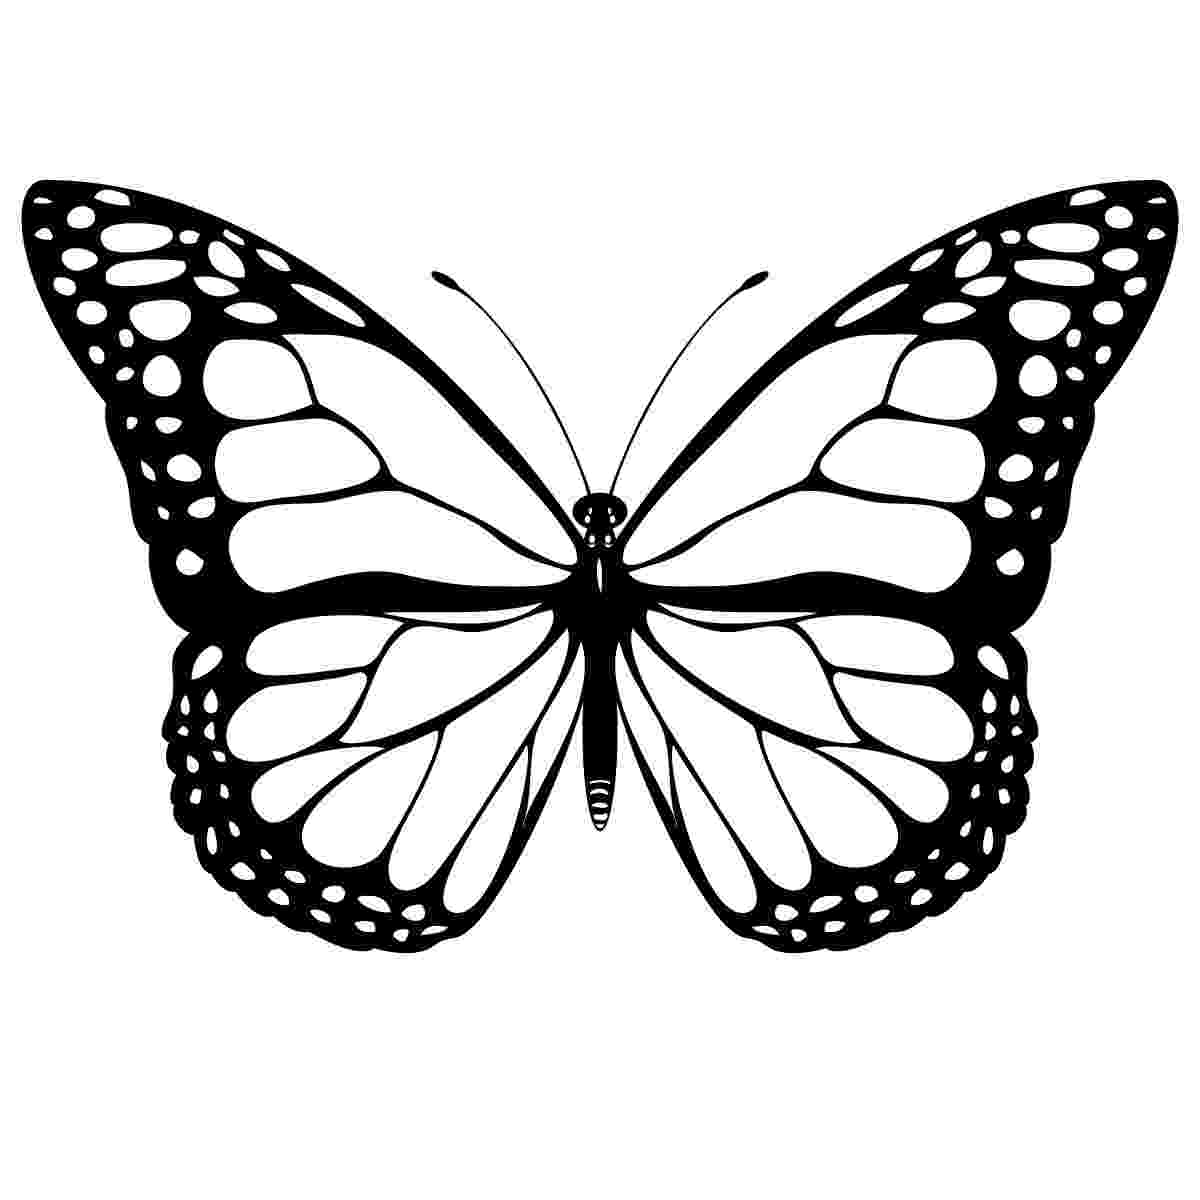 butterfly coloring pages free printable free printable butterfly coloring pages for kids butterfly pages coloring free printable